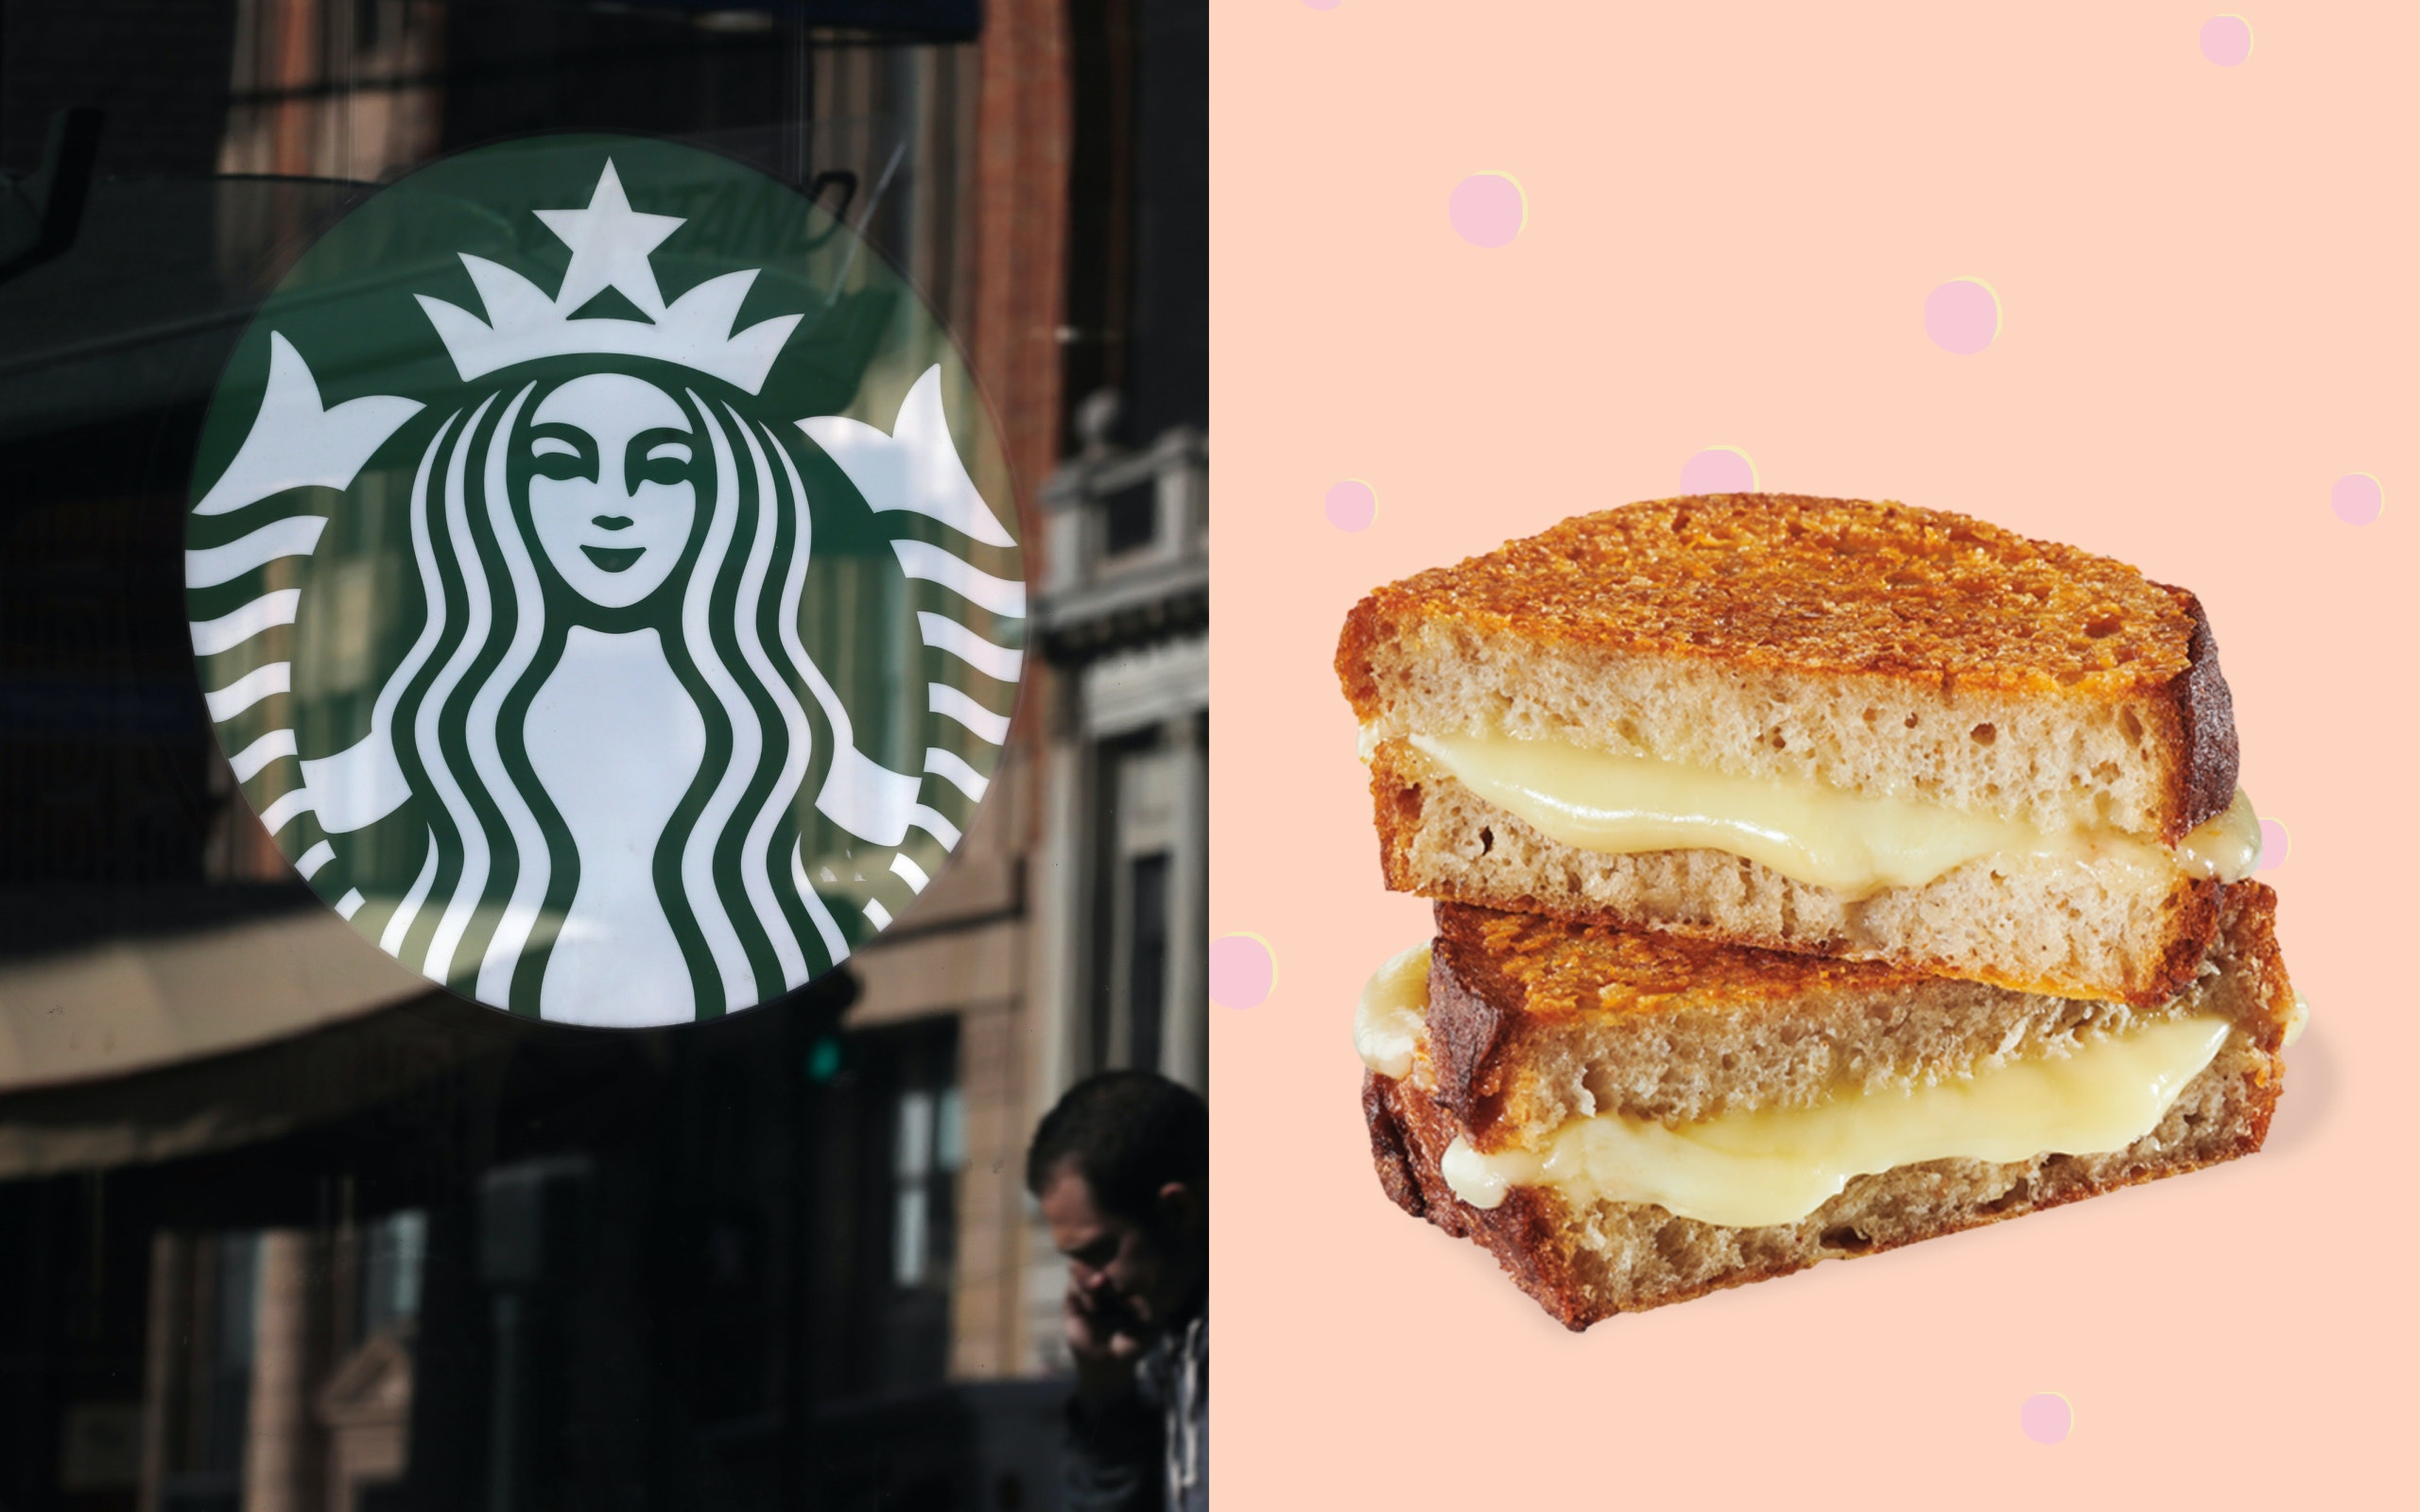 Starbucks New Food Menu Items For Spring 2019 Include The